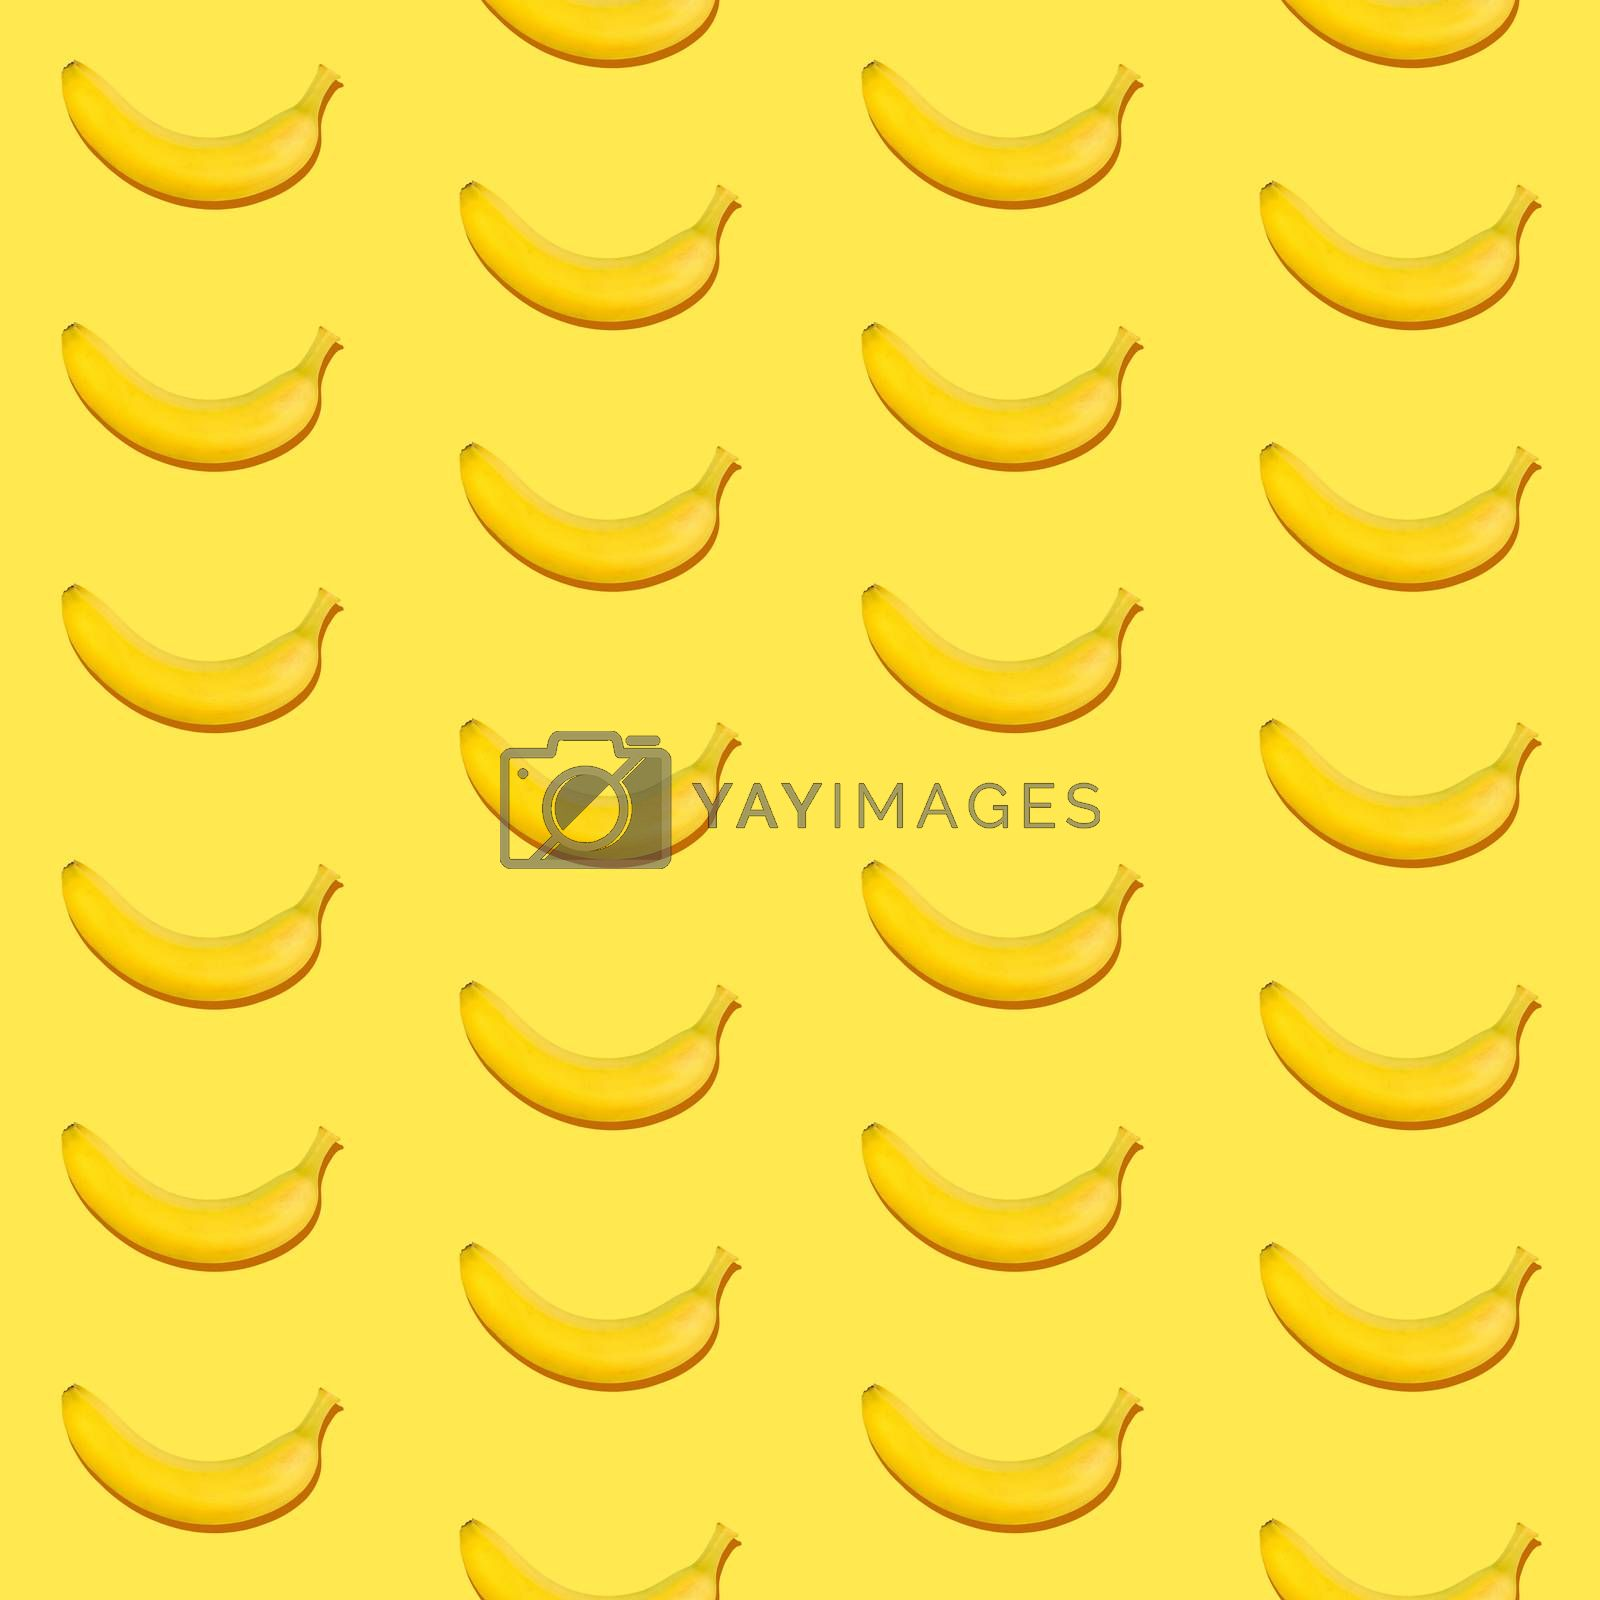 Seamless pattern of bananas on yellow background by BreakingTheWalls